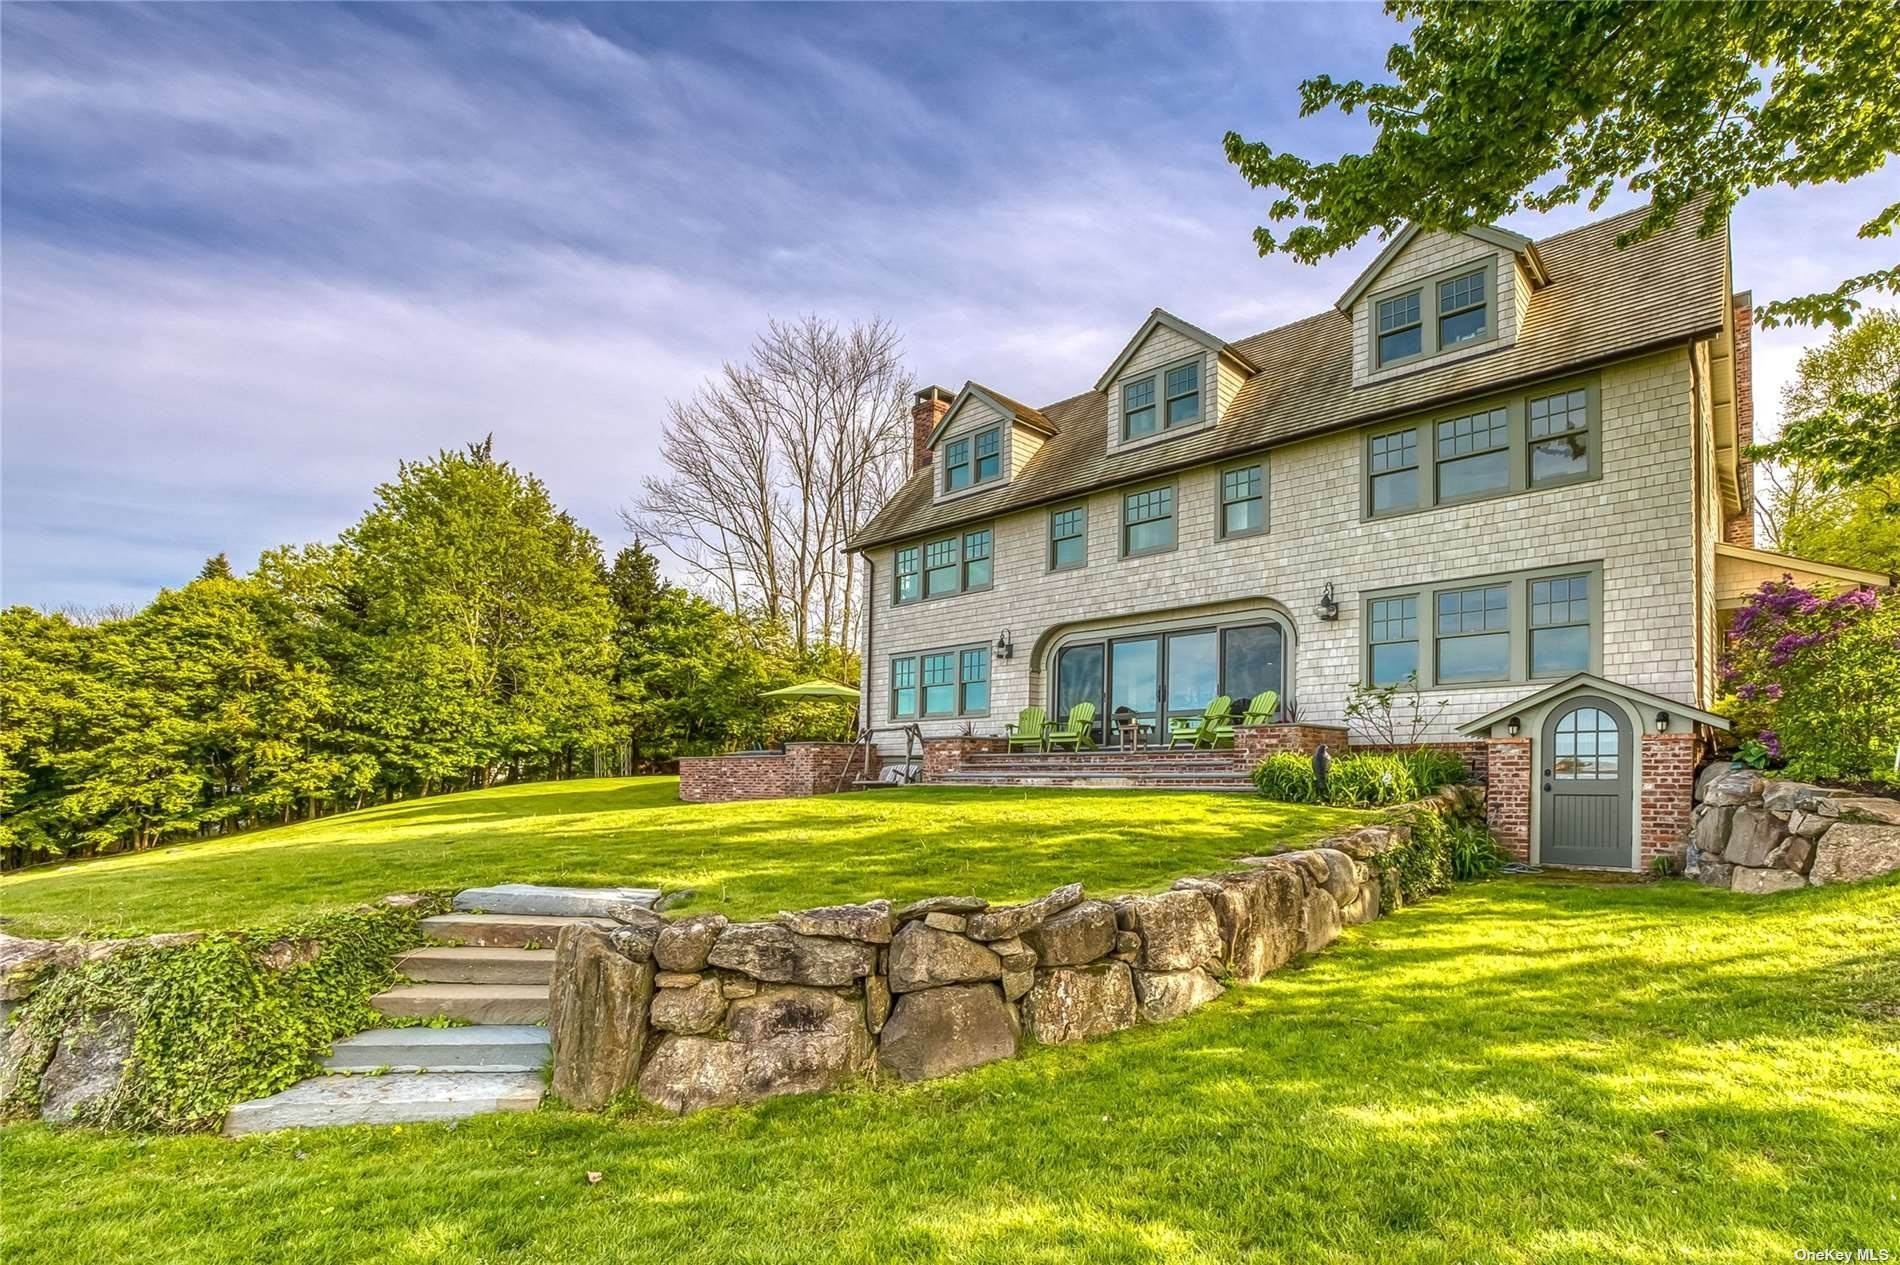 Residential for Sale at 24 Van Wyck Lane Lloyd Harbor, New York 11743 United States